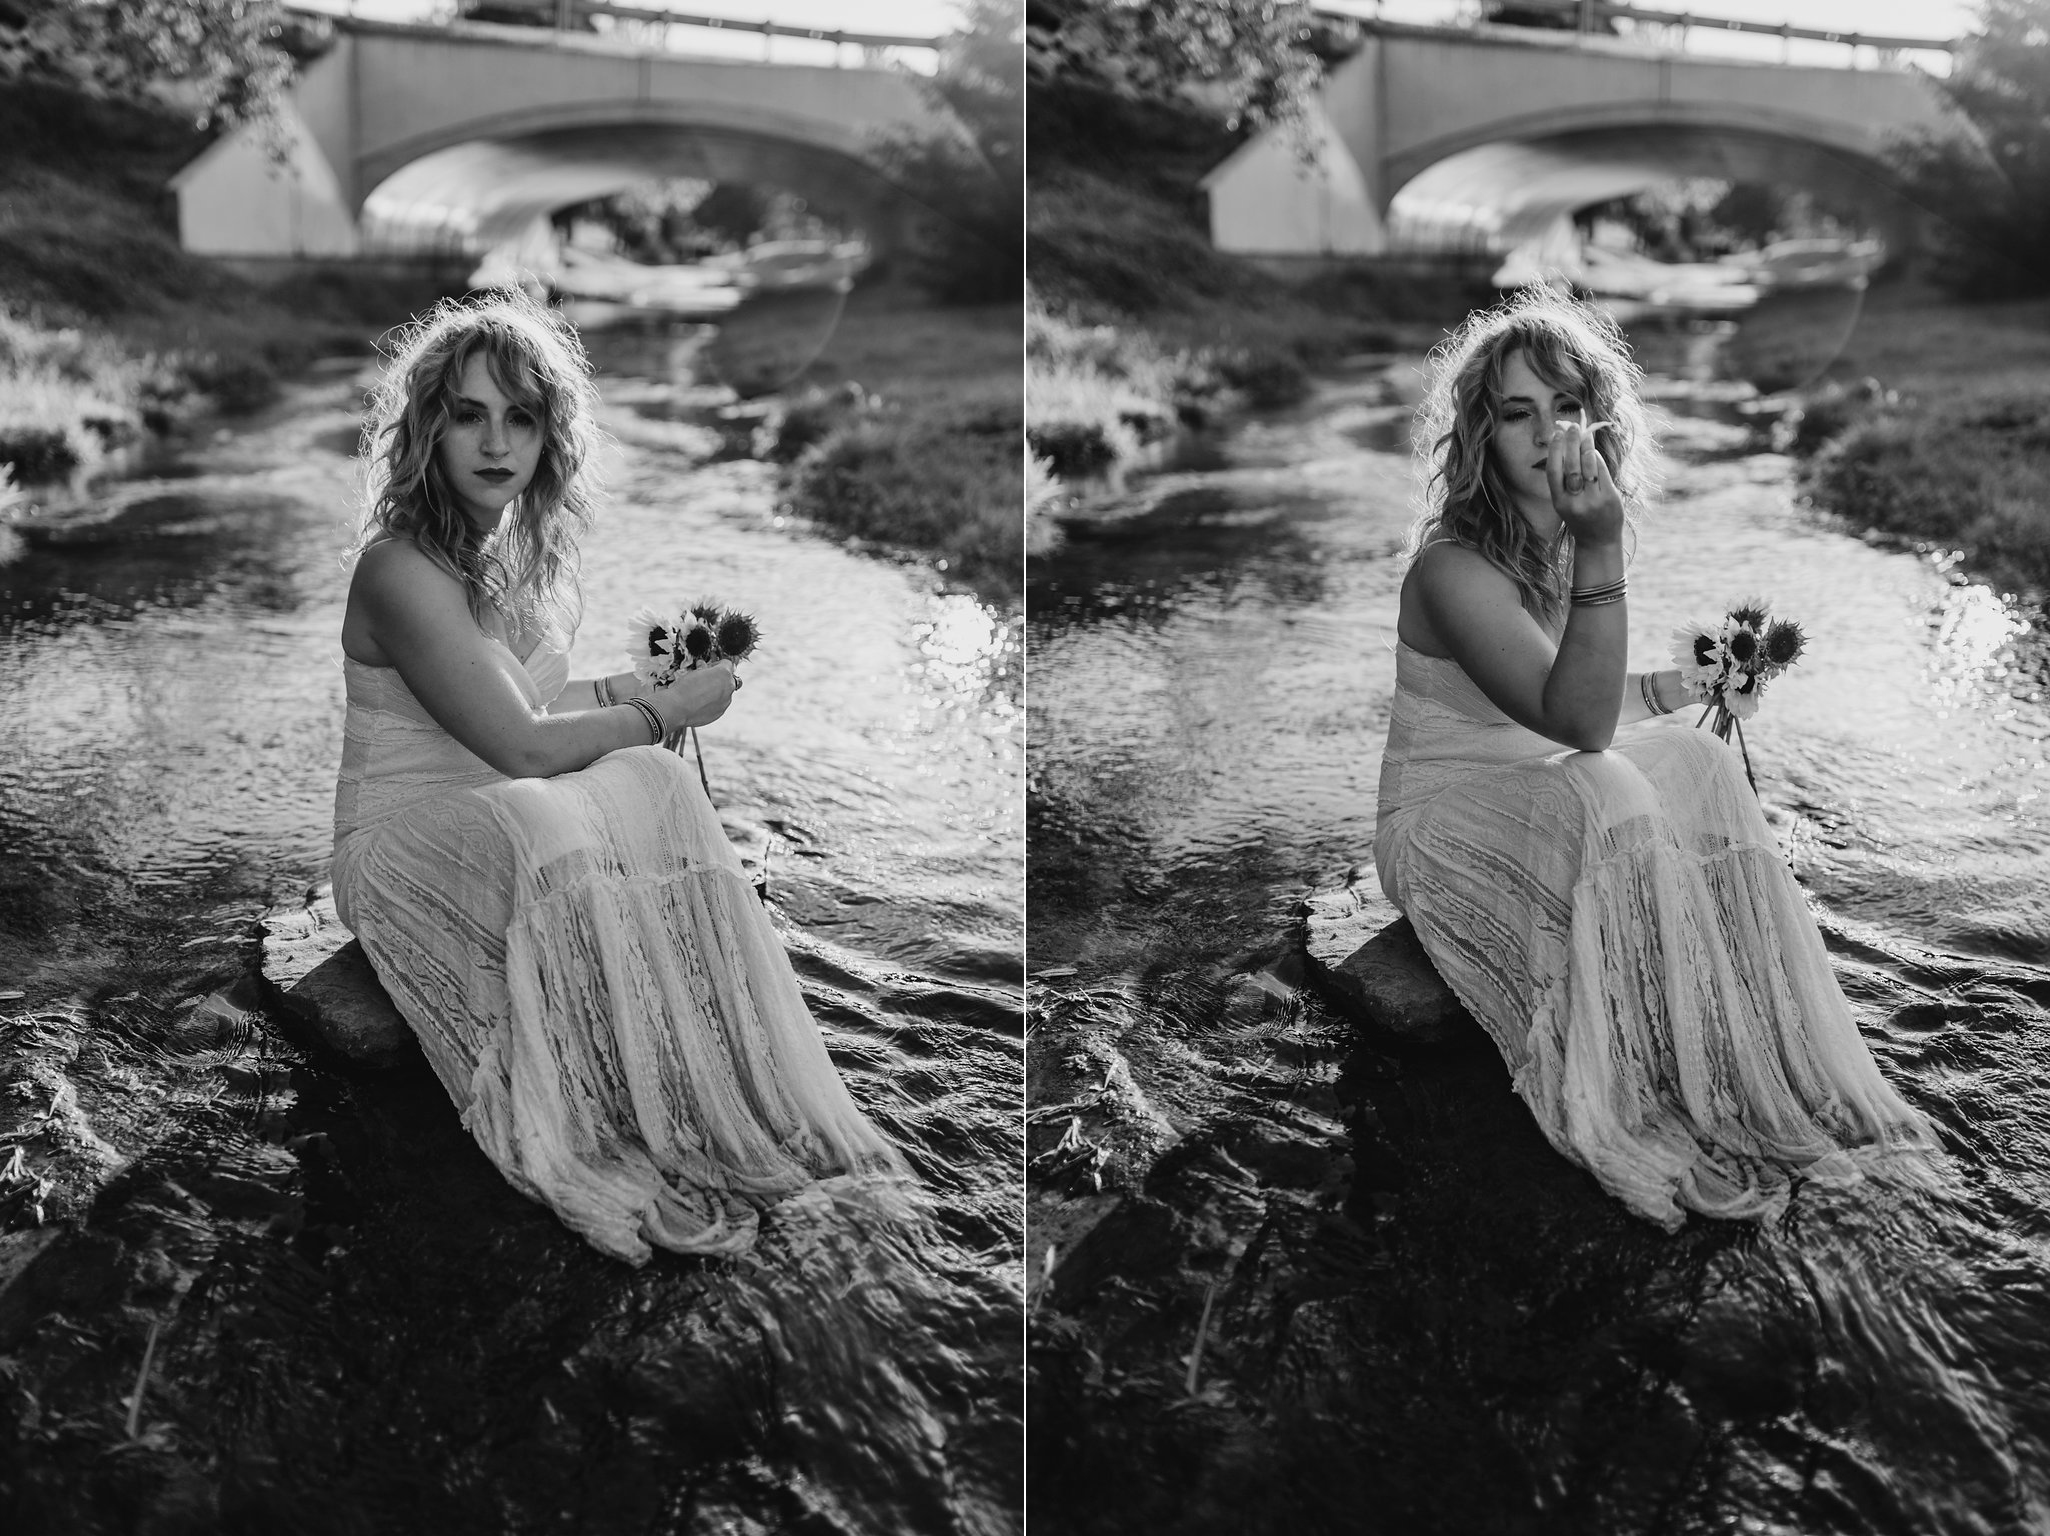 Camille-Joy-Music-Franklin-Tennessee-Photographer-Creek-Berry-Farms-Senior-Portraits-Water-17